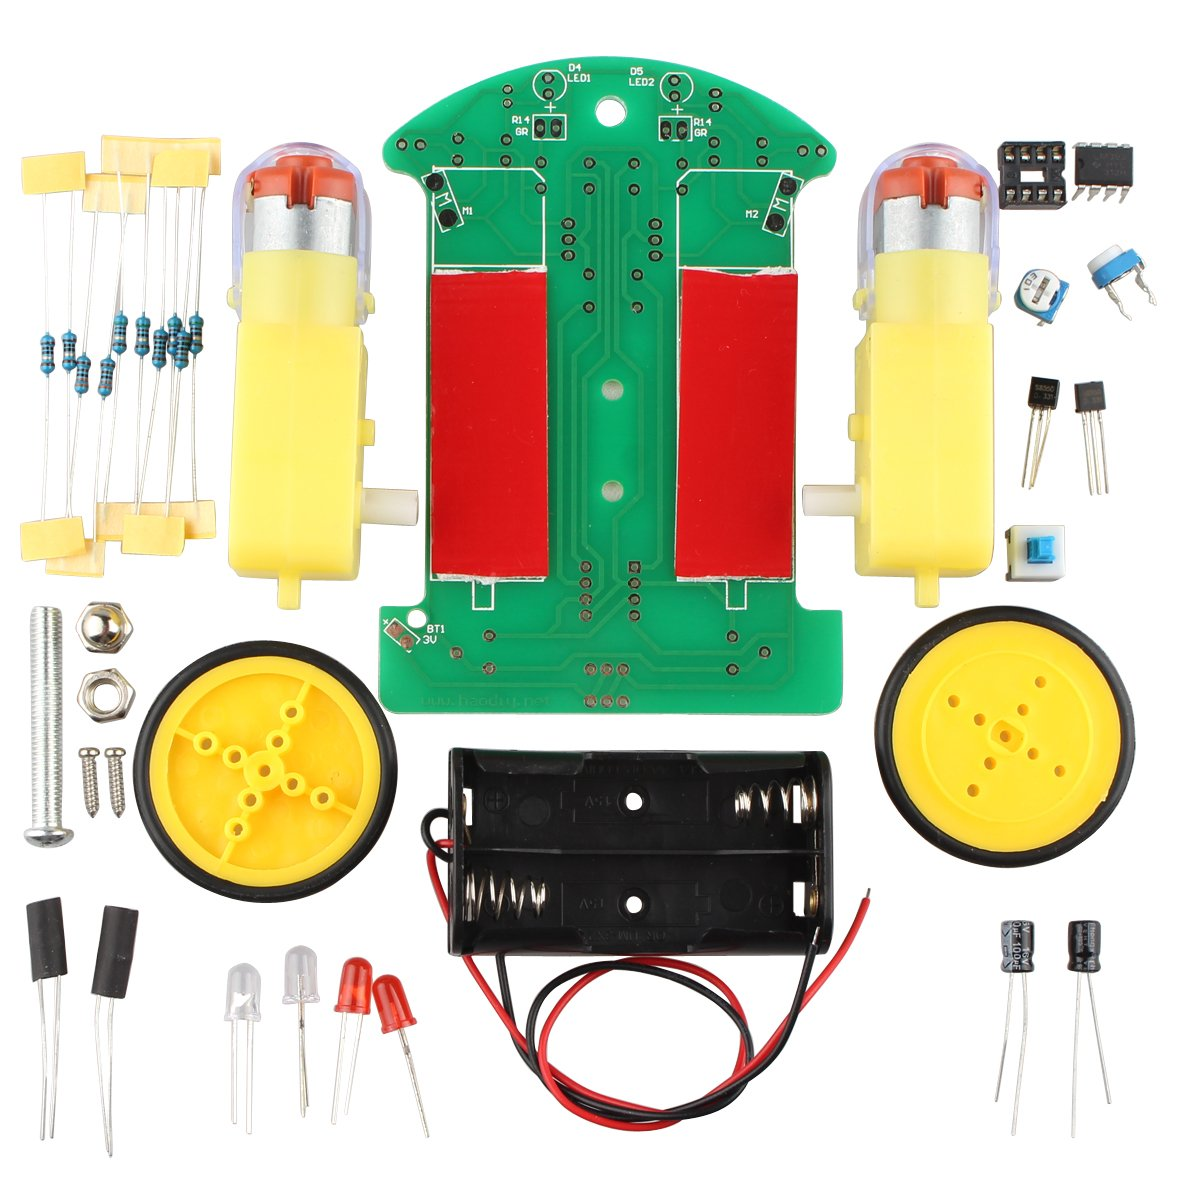 Haljia Tracking Robot Car Electronic Diy Kit With Gear Motor Amazon 4x4x4 Led Cube Schematic Light Strip Lighting Wiring Diagram Computers Accessories